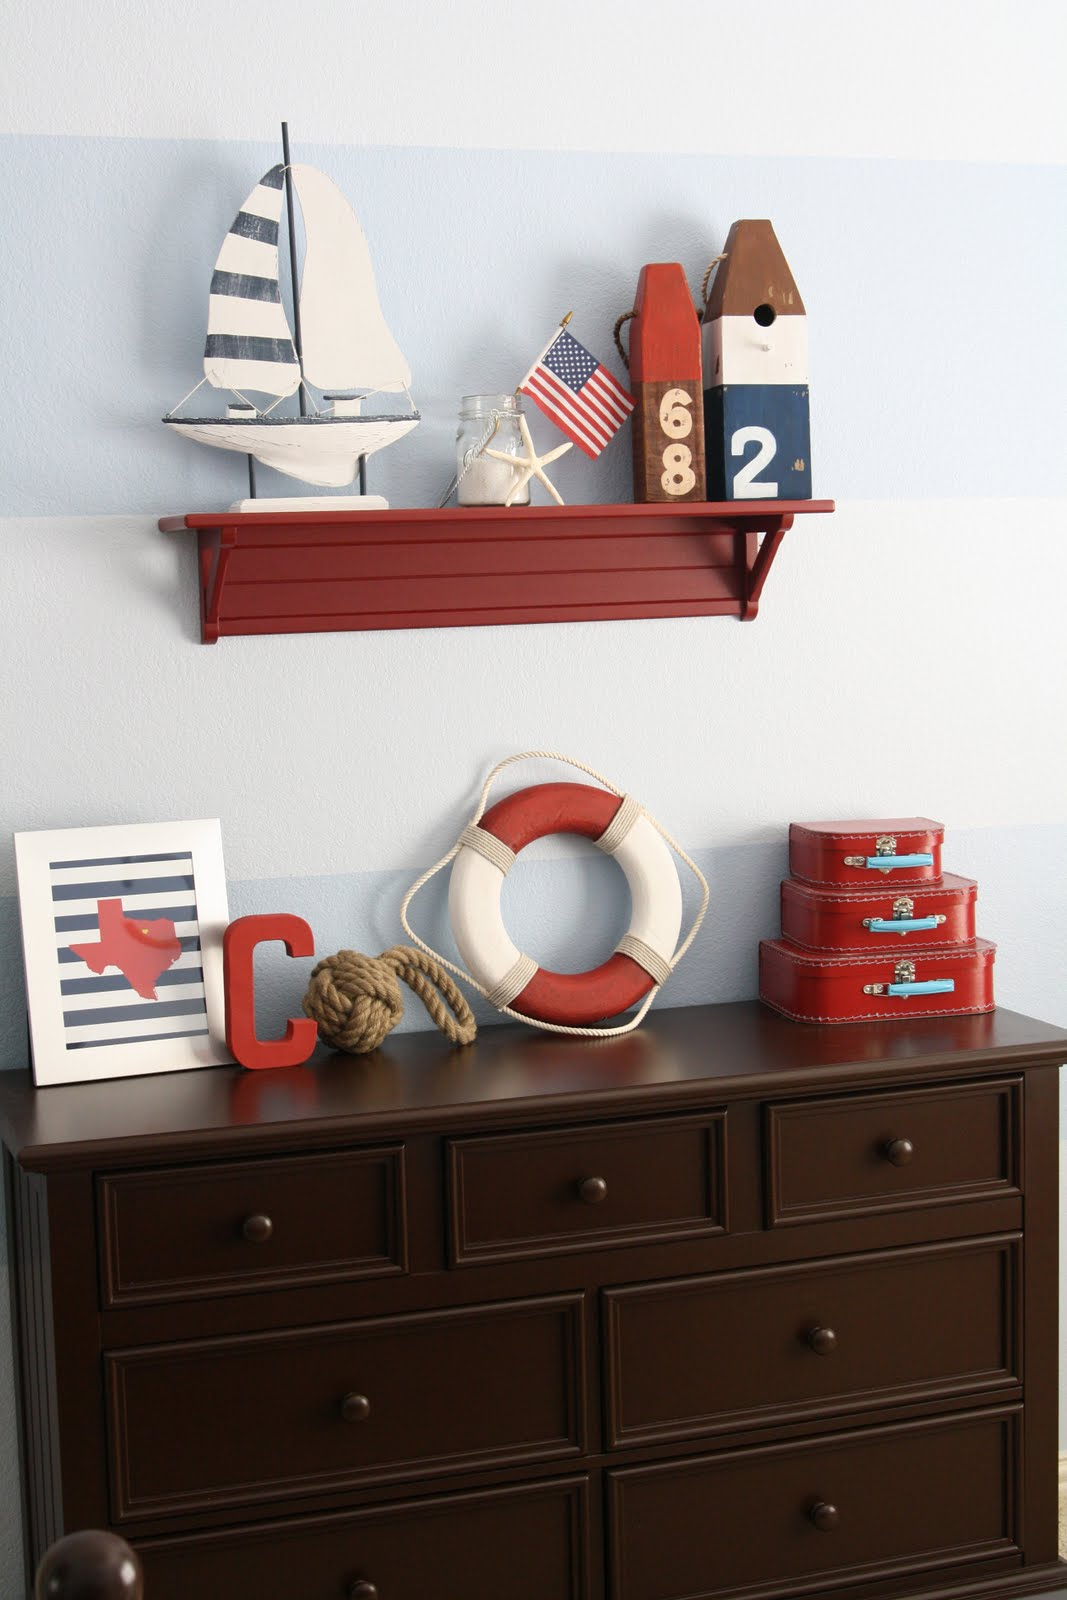 Nautical bedroom on pinterest nautical boys nautical bedroom and nautical bedroom decor - Decoration of boys bedroom ...